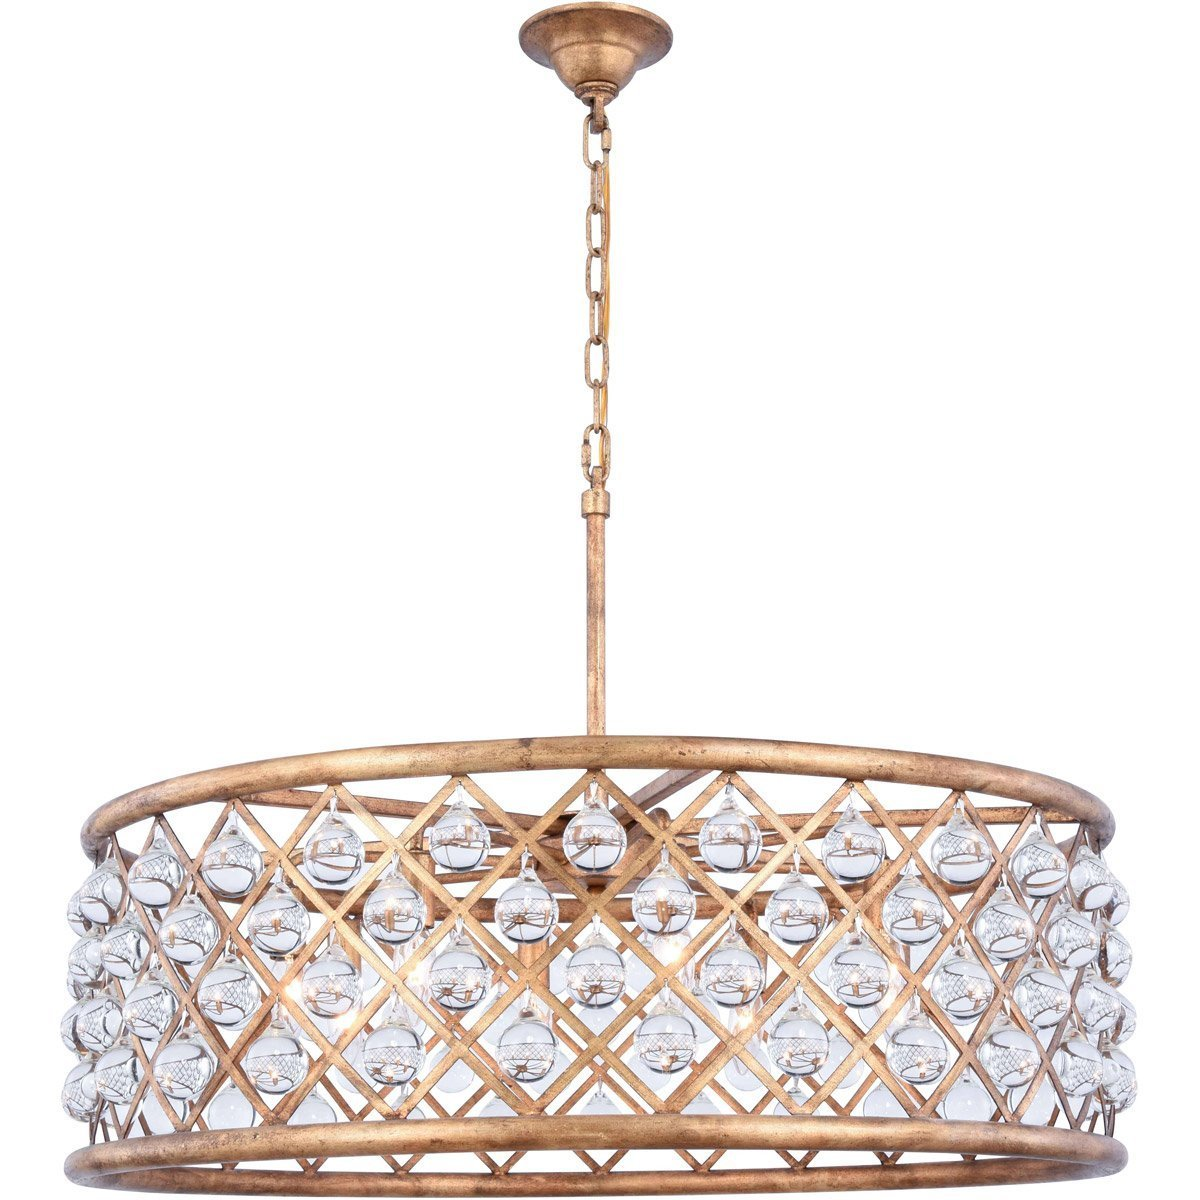 Madison 32 Crystal Pendant Chandelier With 8 Lights - Golden Iron Finish Chandelier